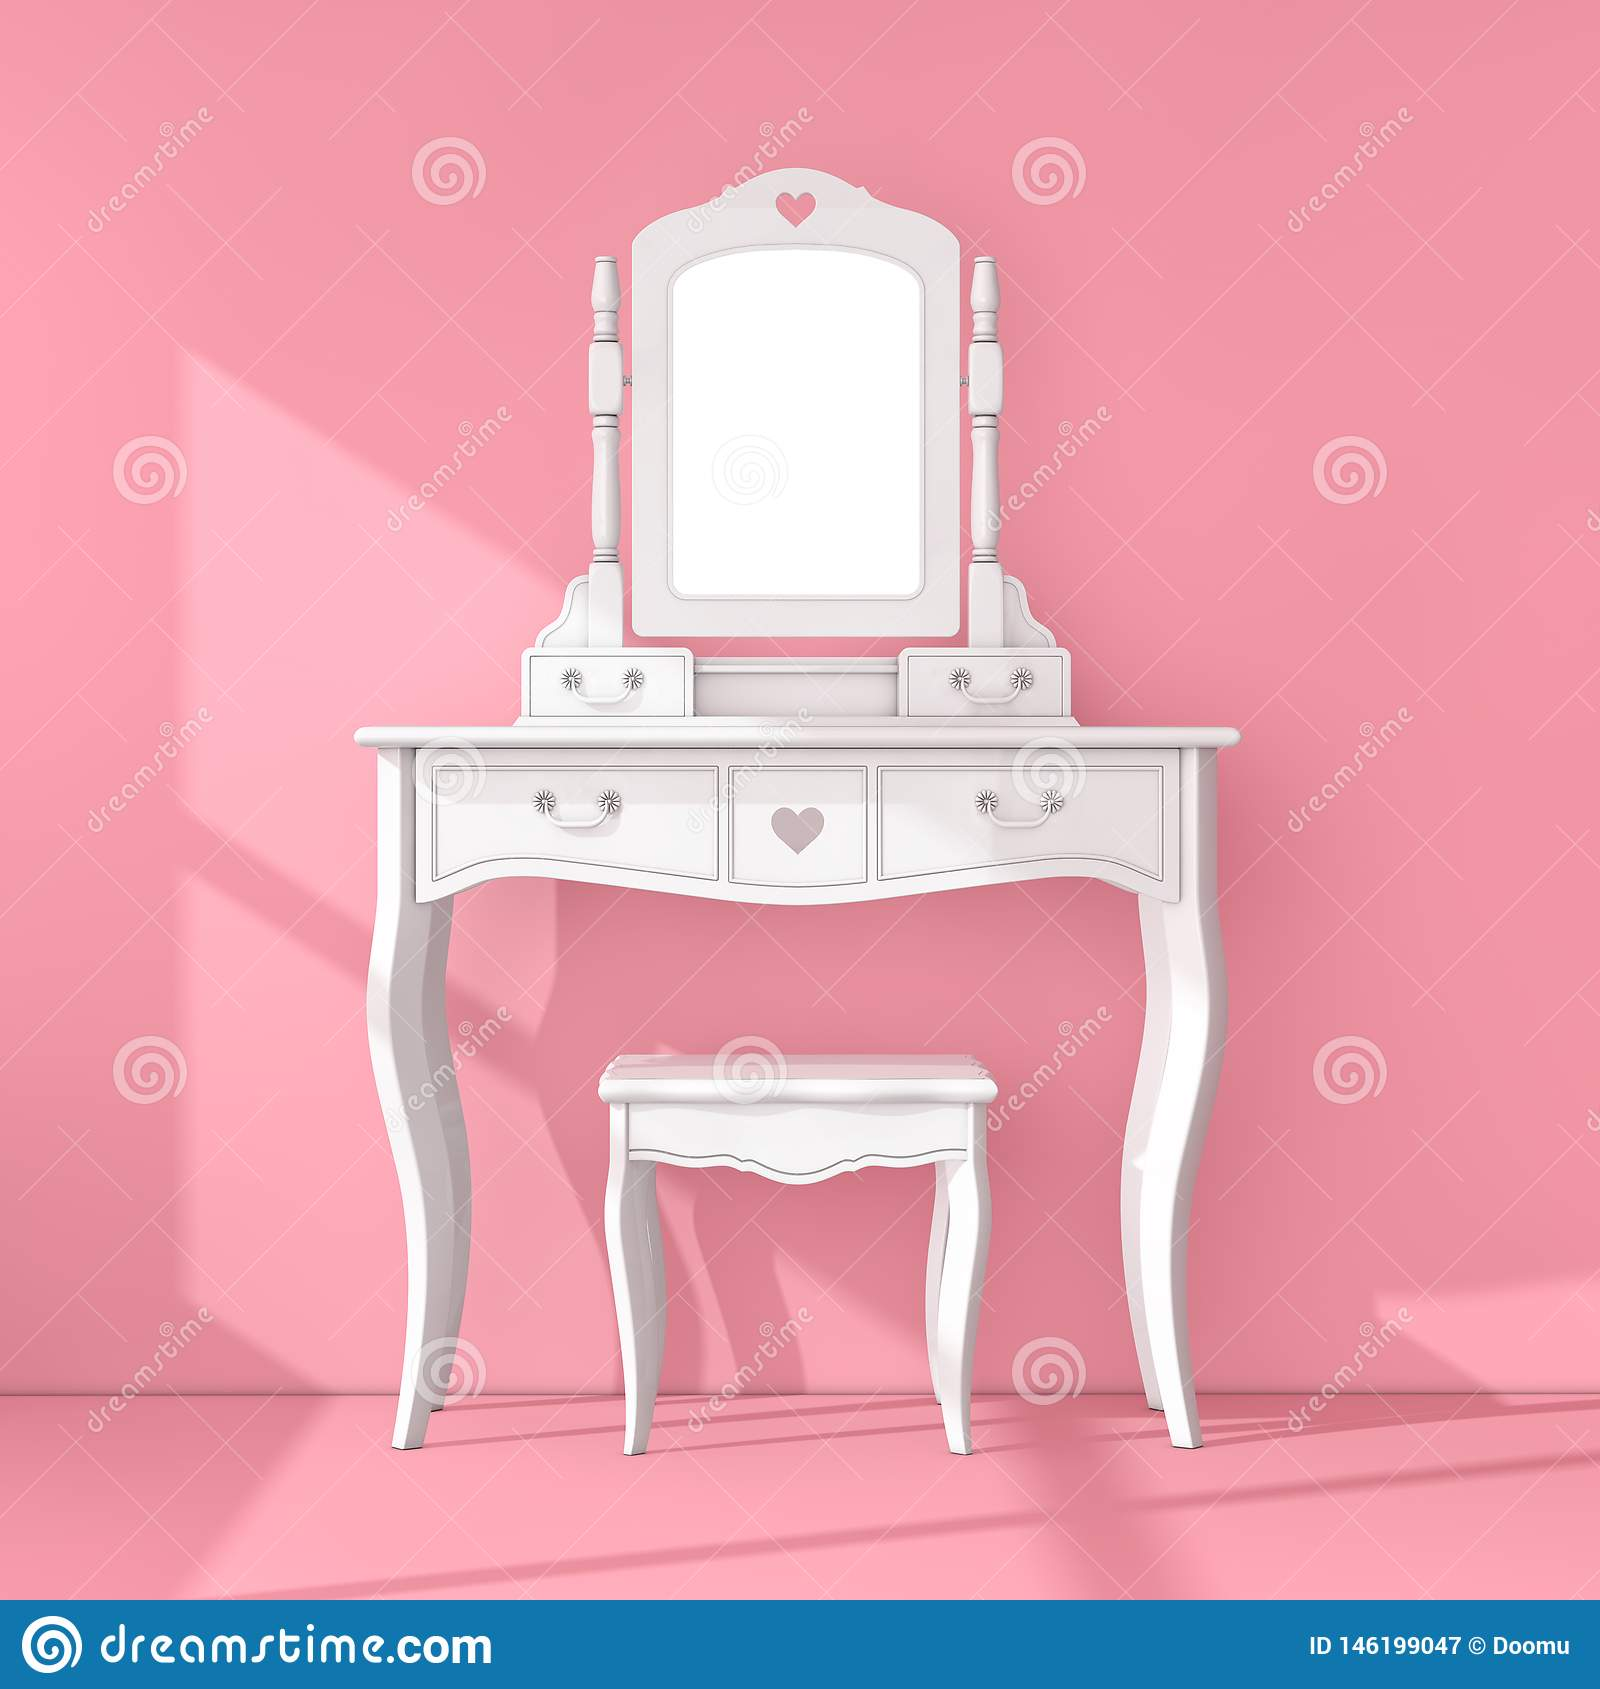 Antique Bedroom Vanity Table With Stool And Mirror In Pink Room 3d Rendering Stock Illustration Illustration Of Pink Hall 146199047